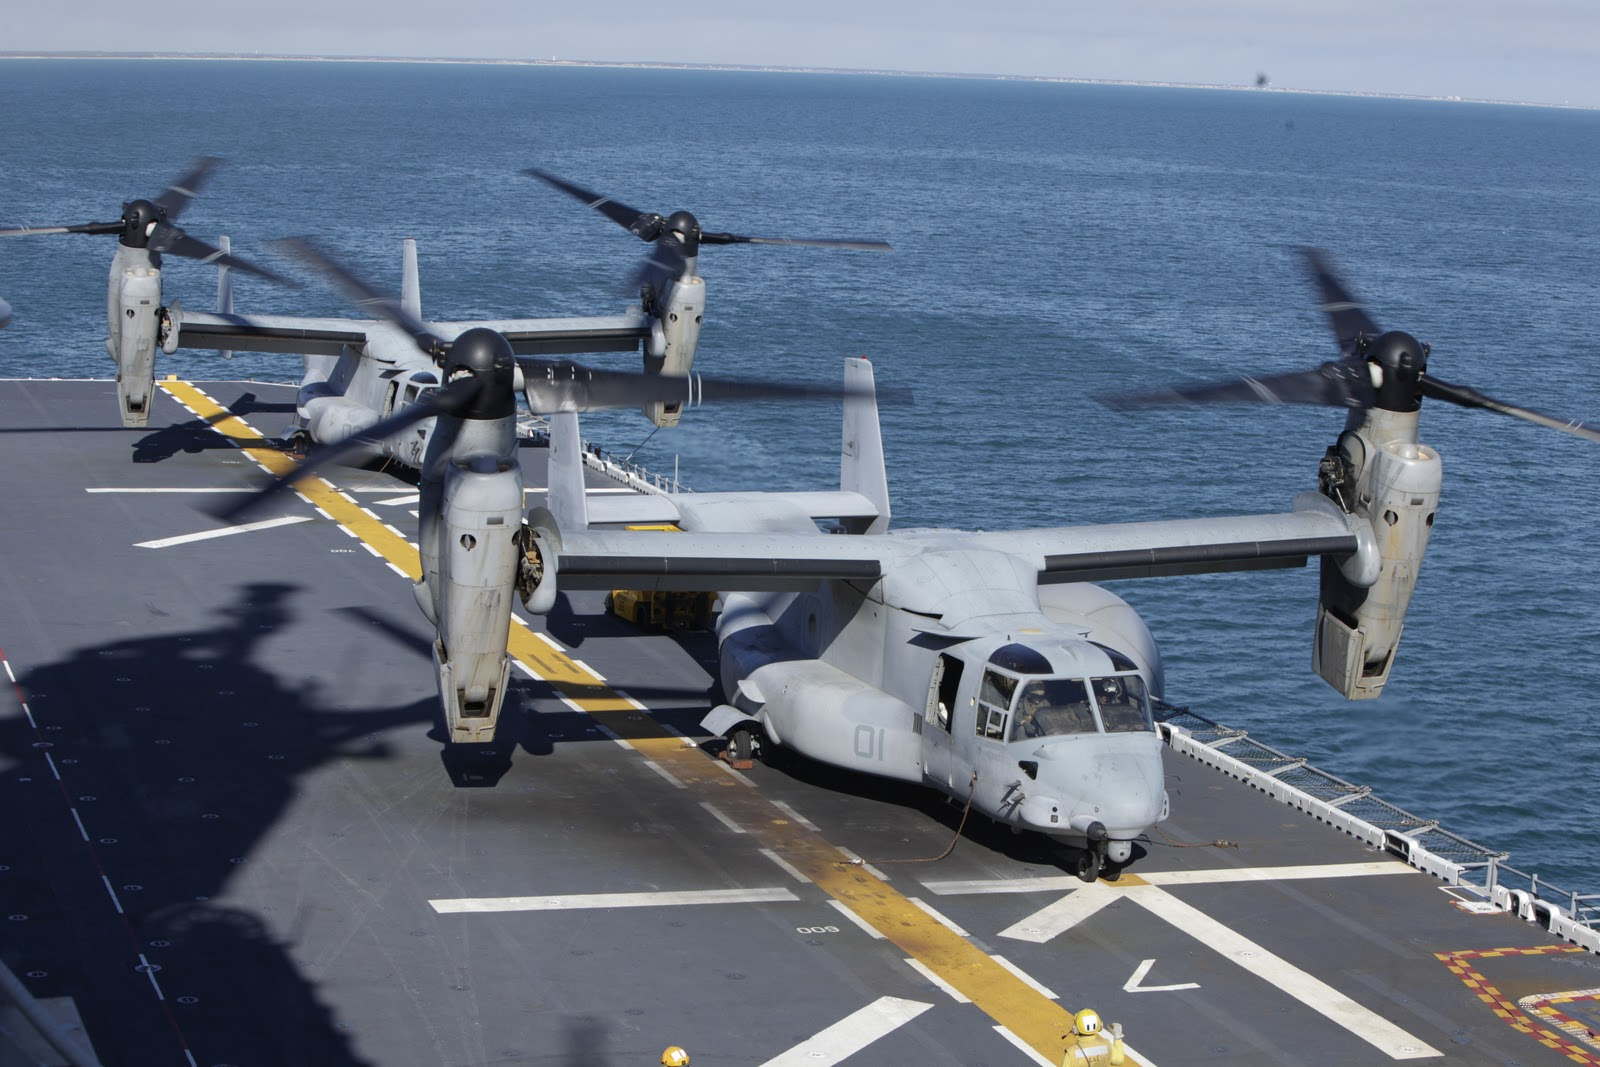 osprey helicopter wallpaper - photo #19